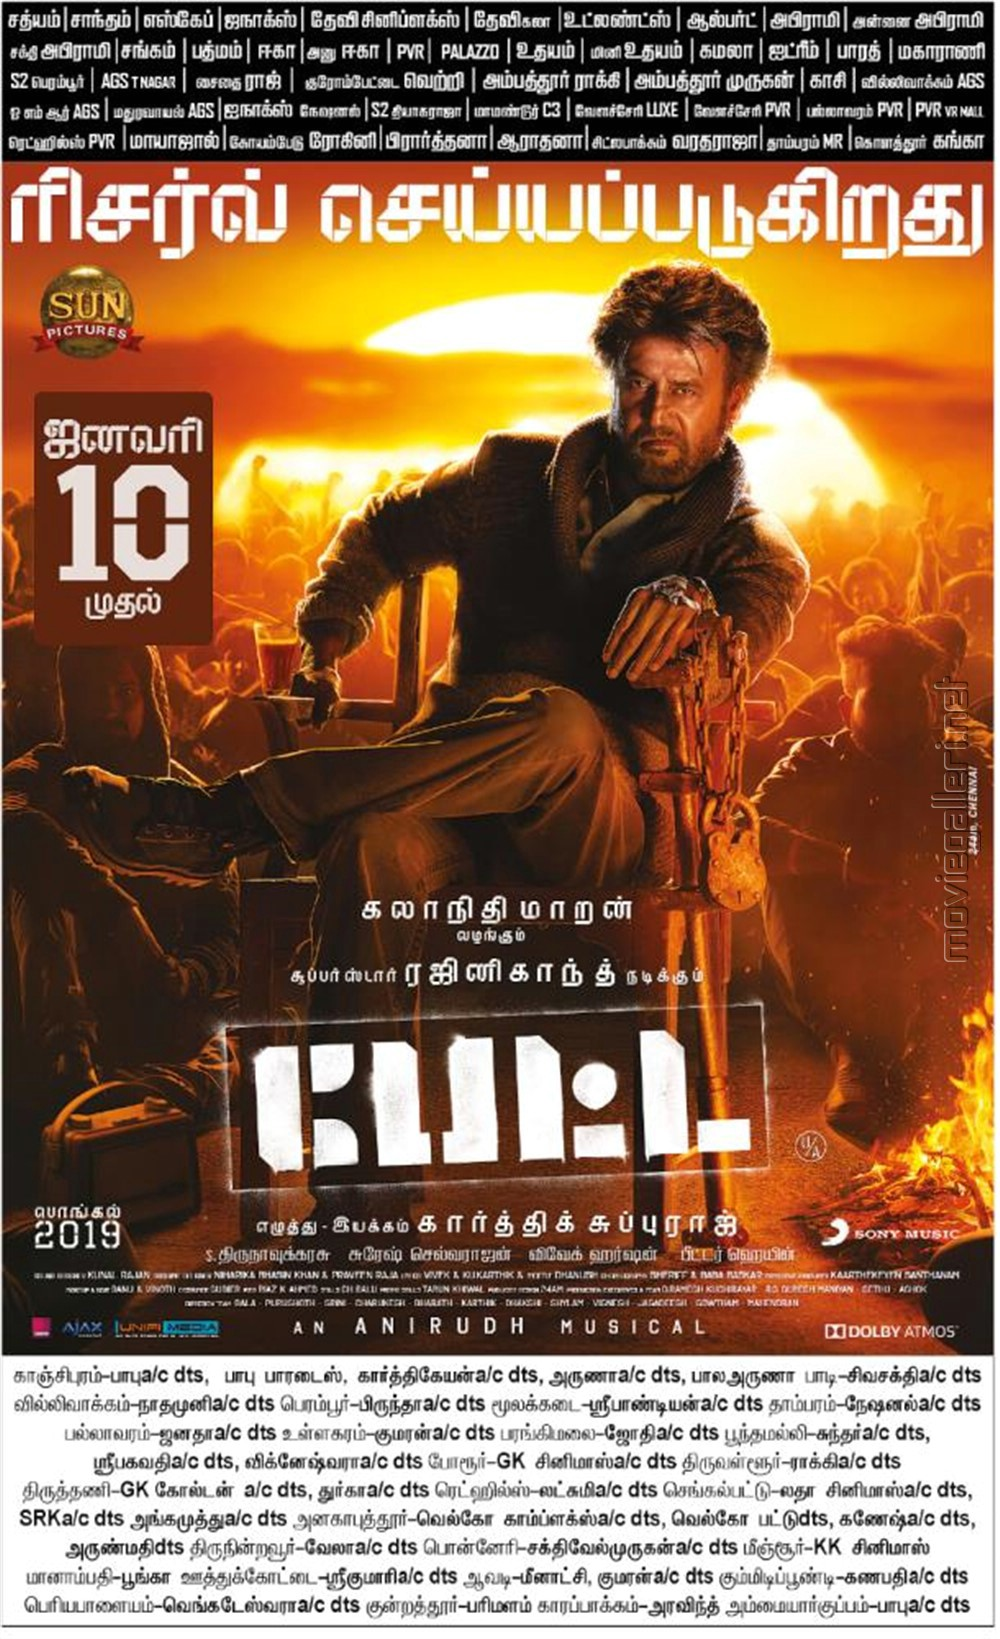 Rajinikanth Petta Movie Release Posters HD